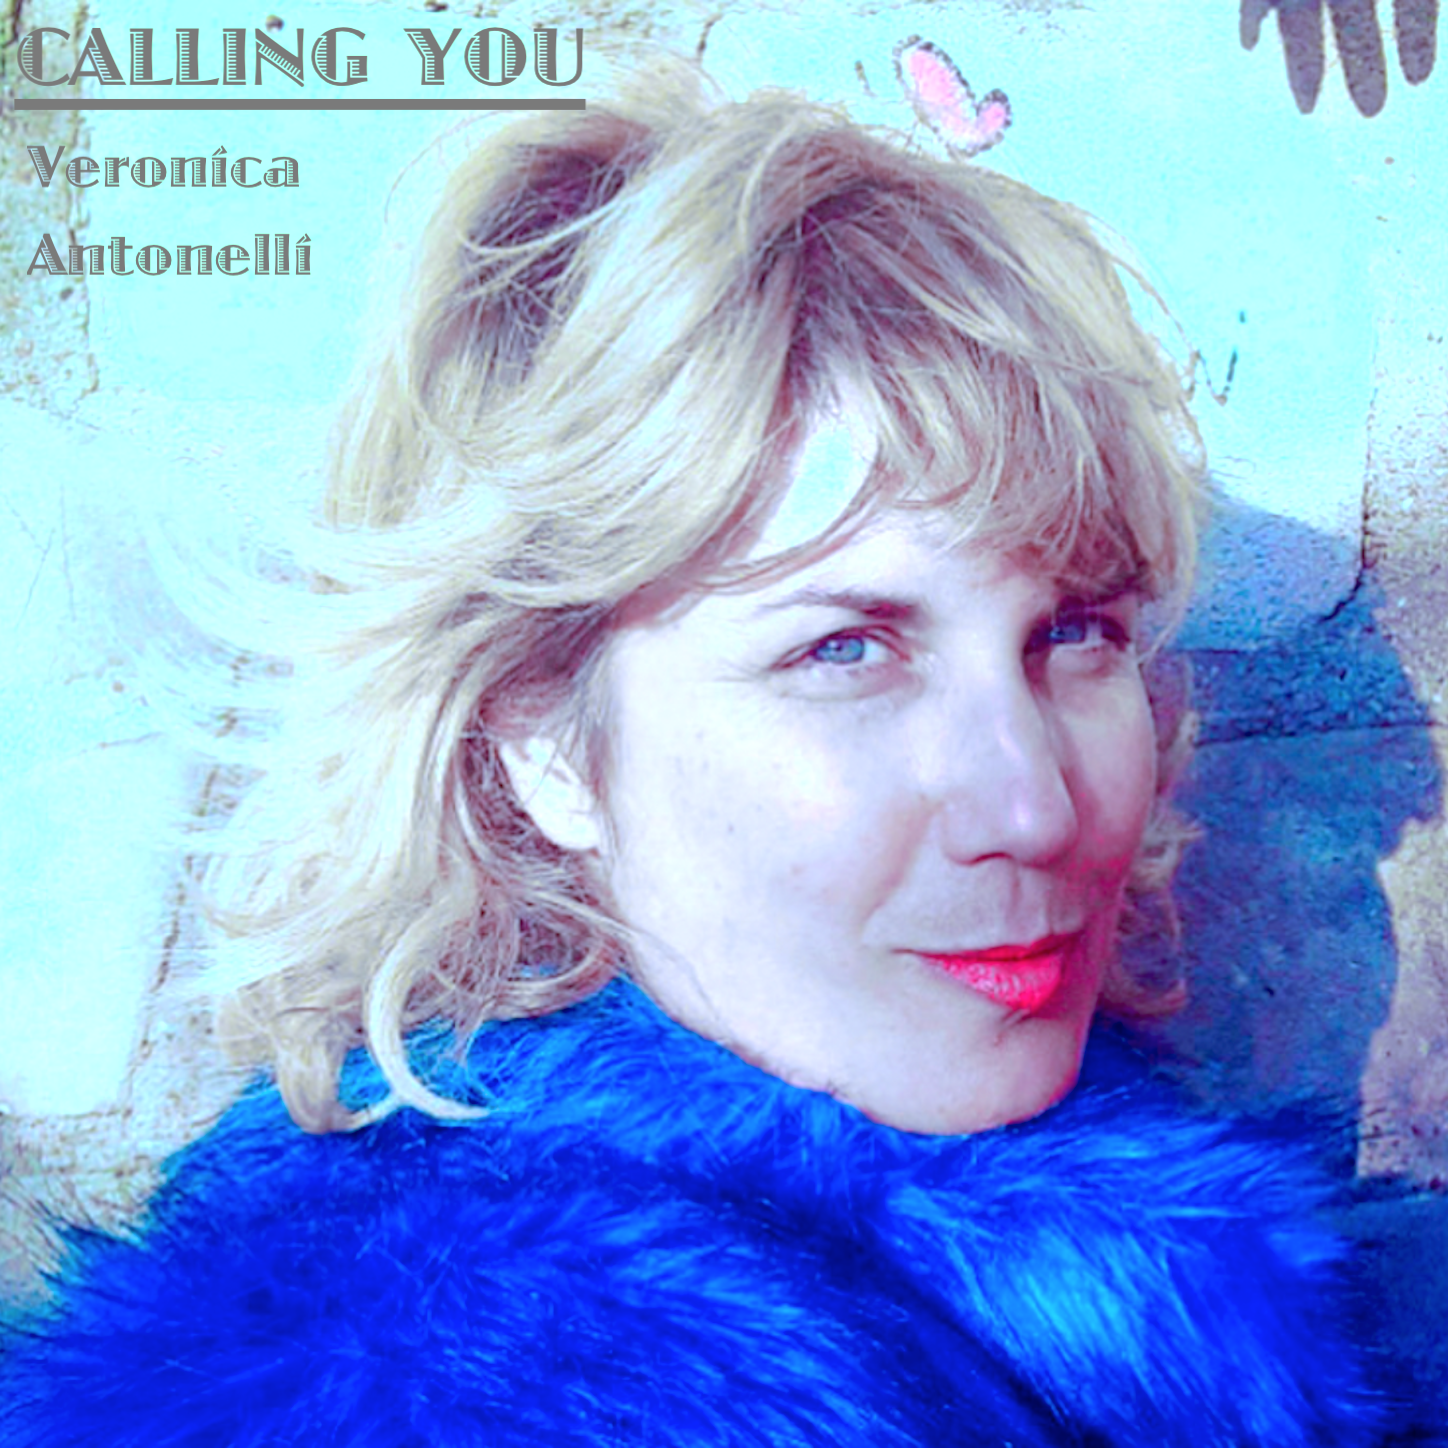 Calling you cover by Veronica Antonelli